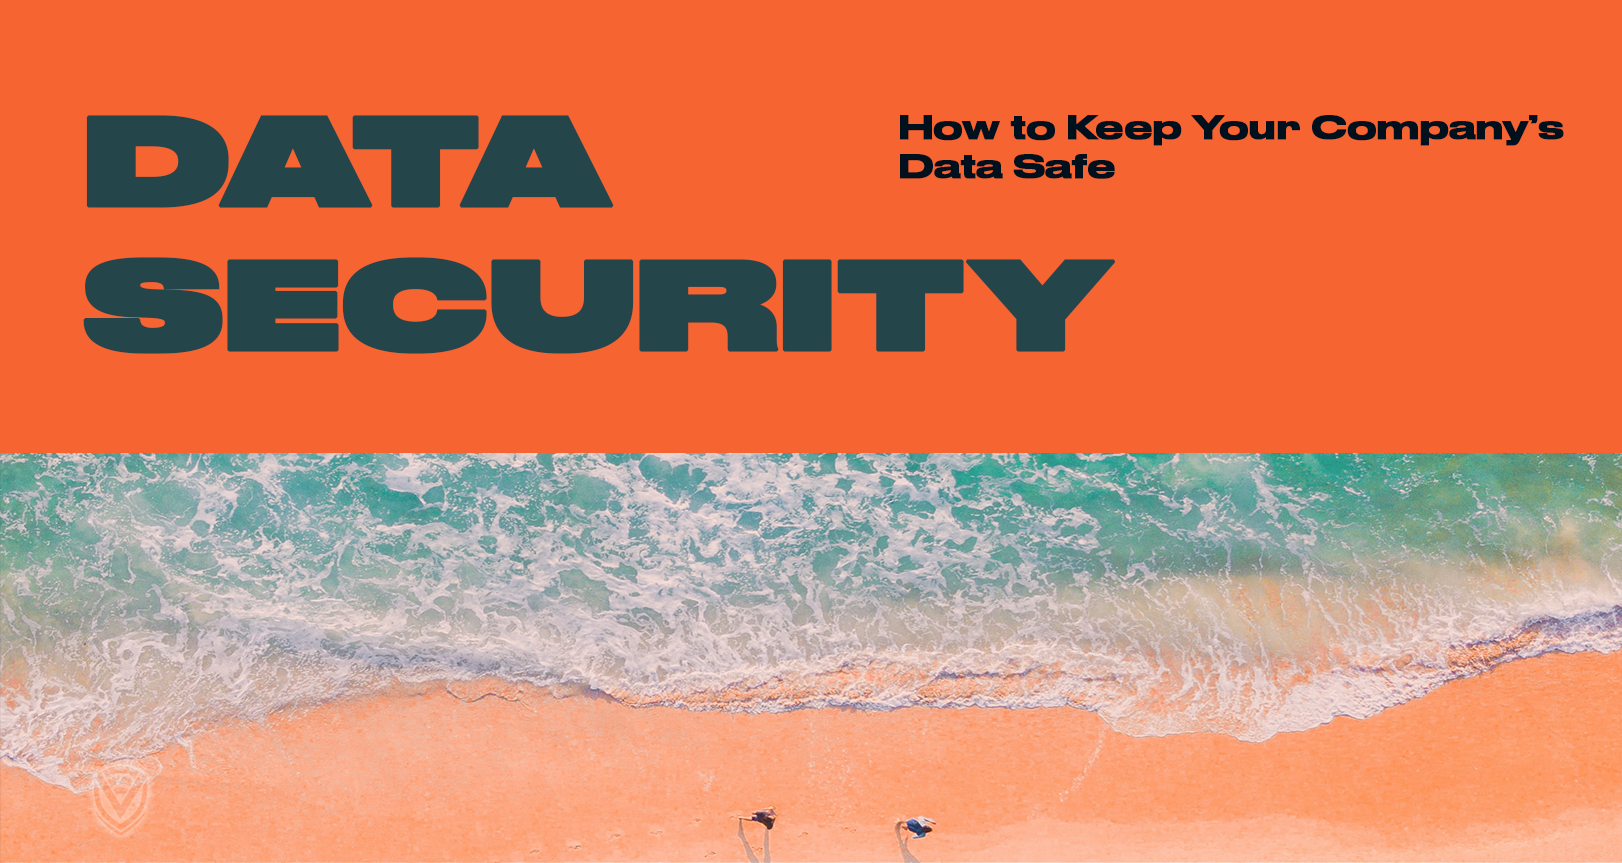 How to Keep Your Company's Data Safe